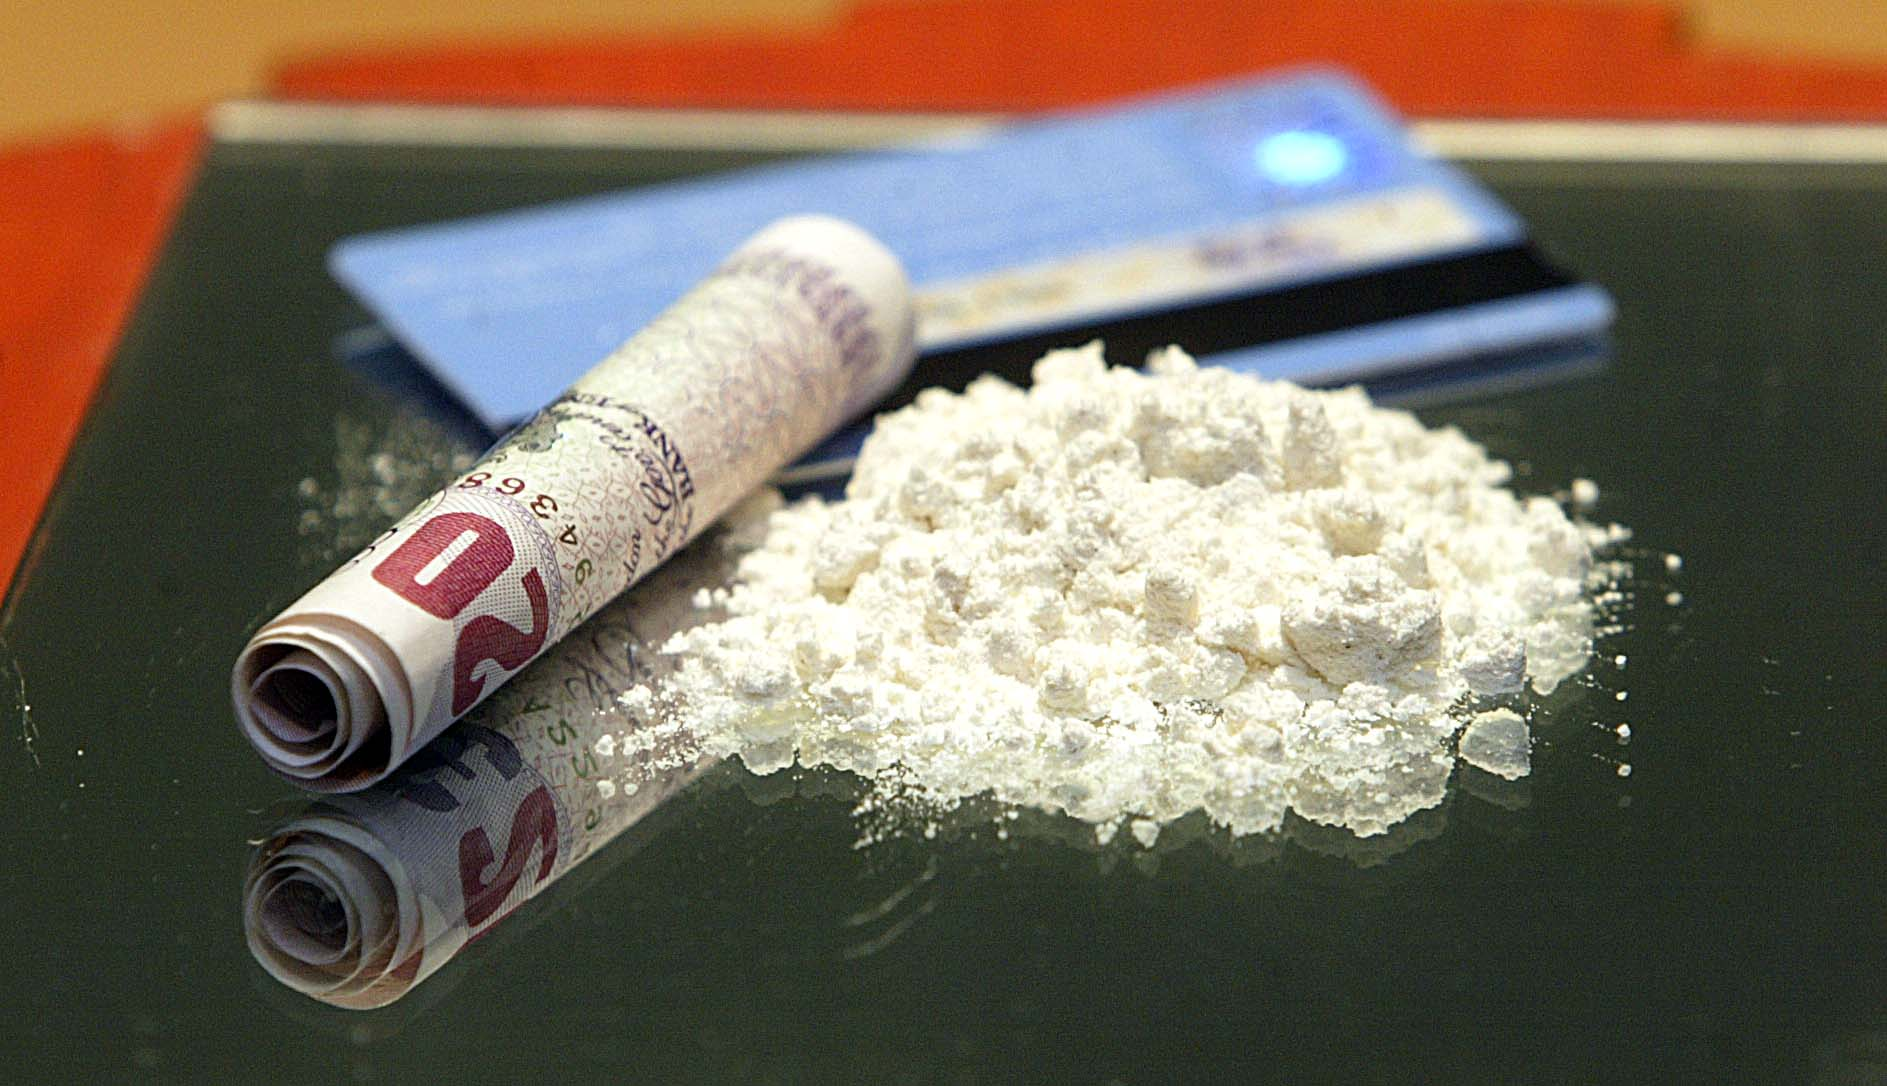 Burnley crack cocaine dealer walks free after surrendering himself